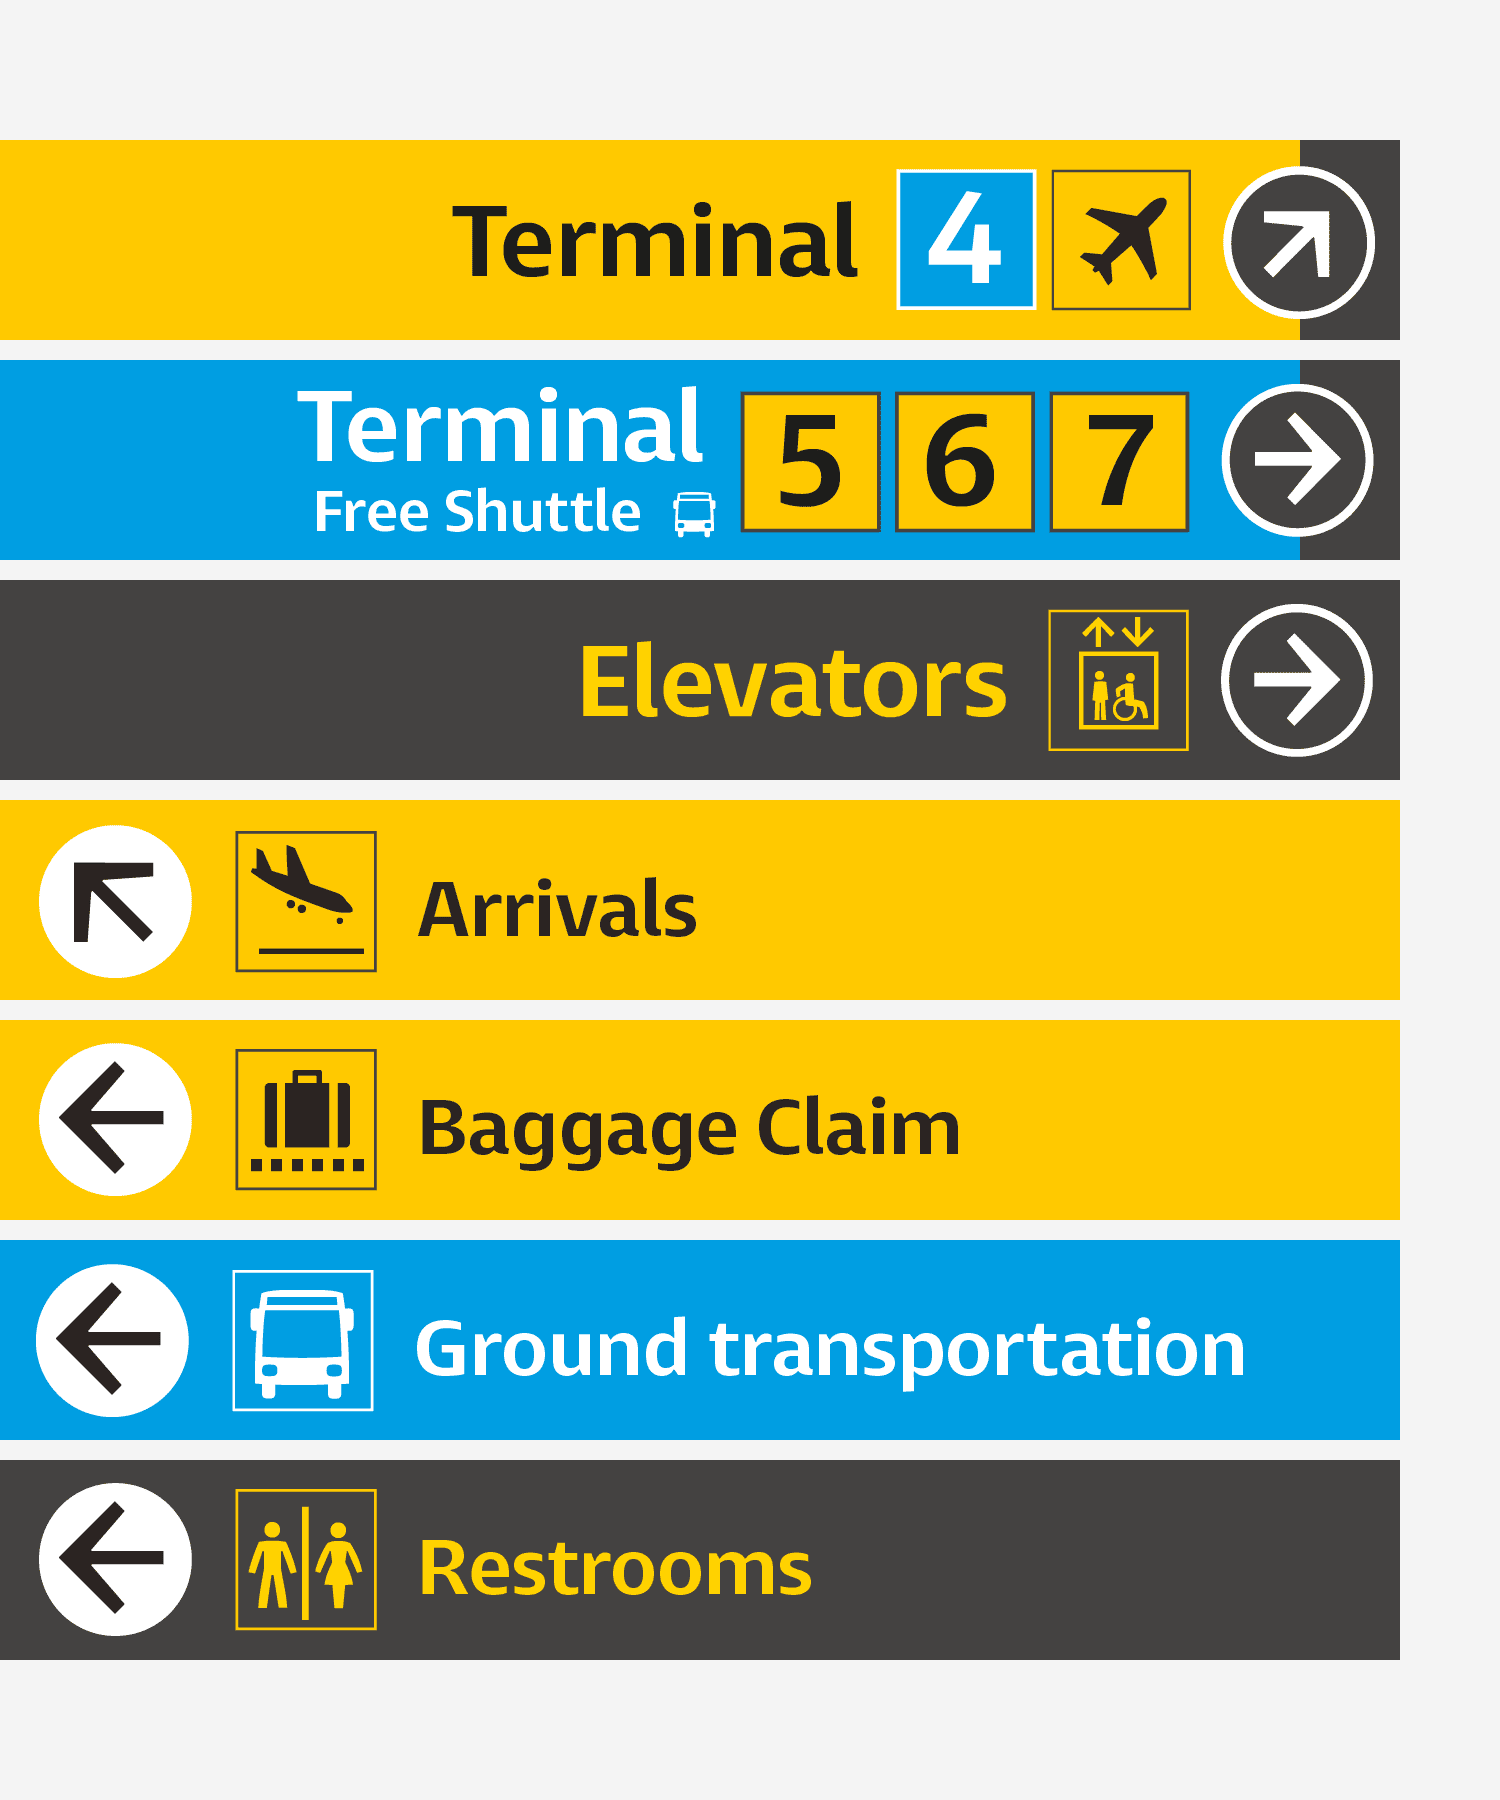 Airport signs using Entorno